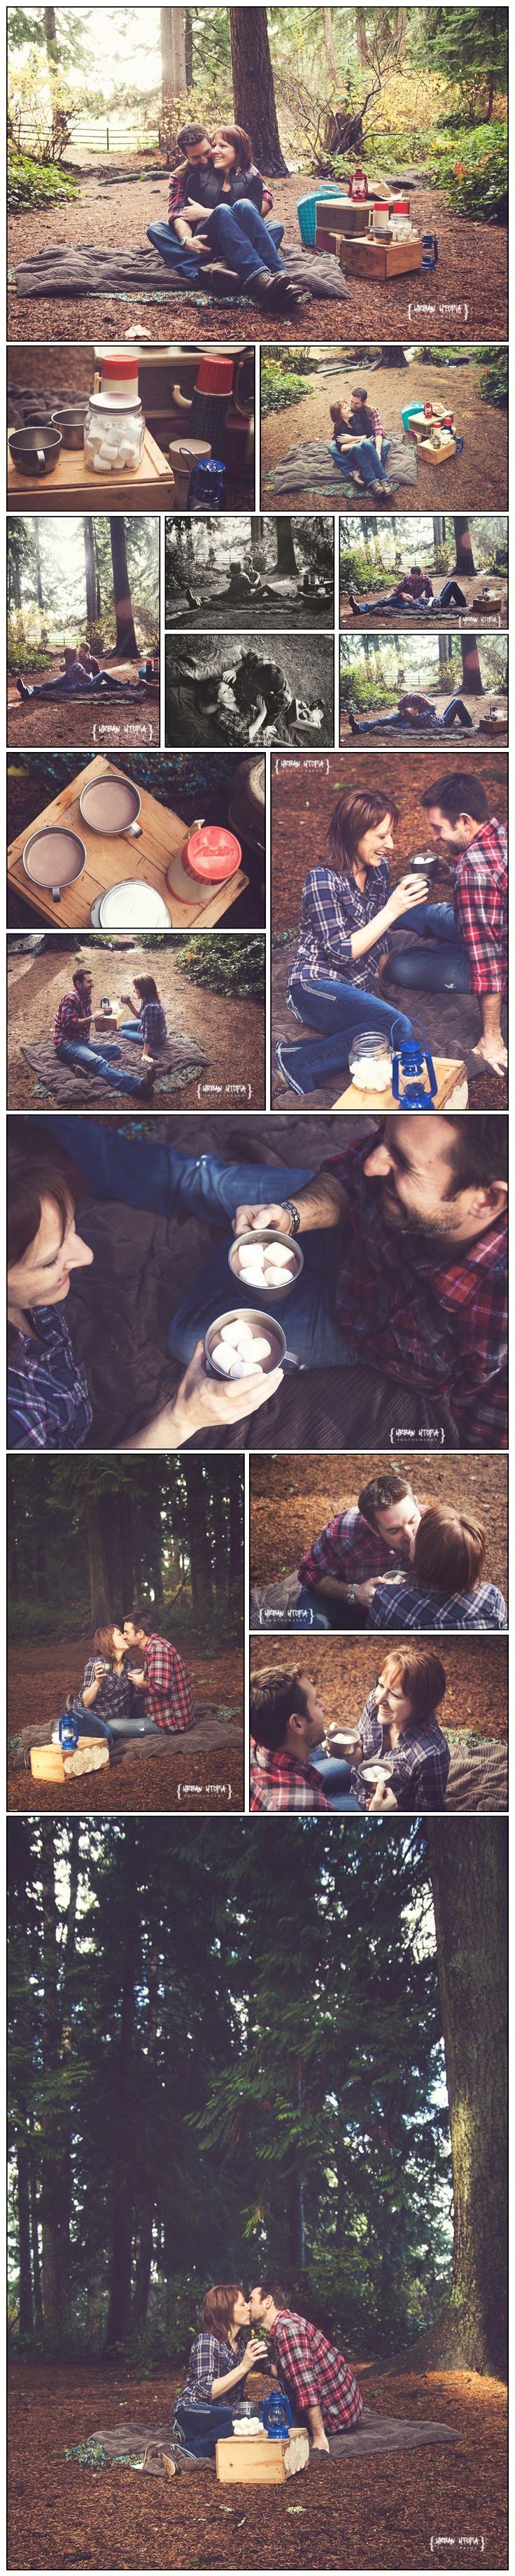 marysville couple_mill creek engagement_forest session_camping session_natural light engagement_lifestyle engagement_engagement in the woods...www.urbanutopiaphotography.com